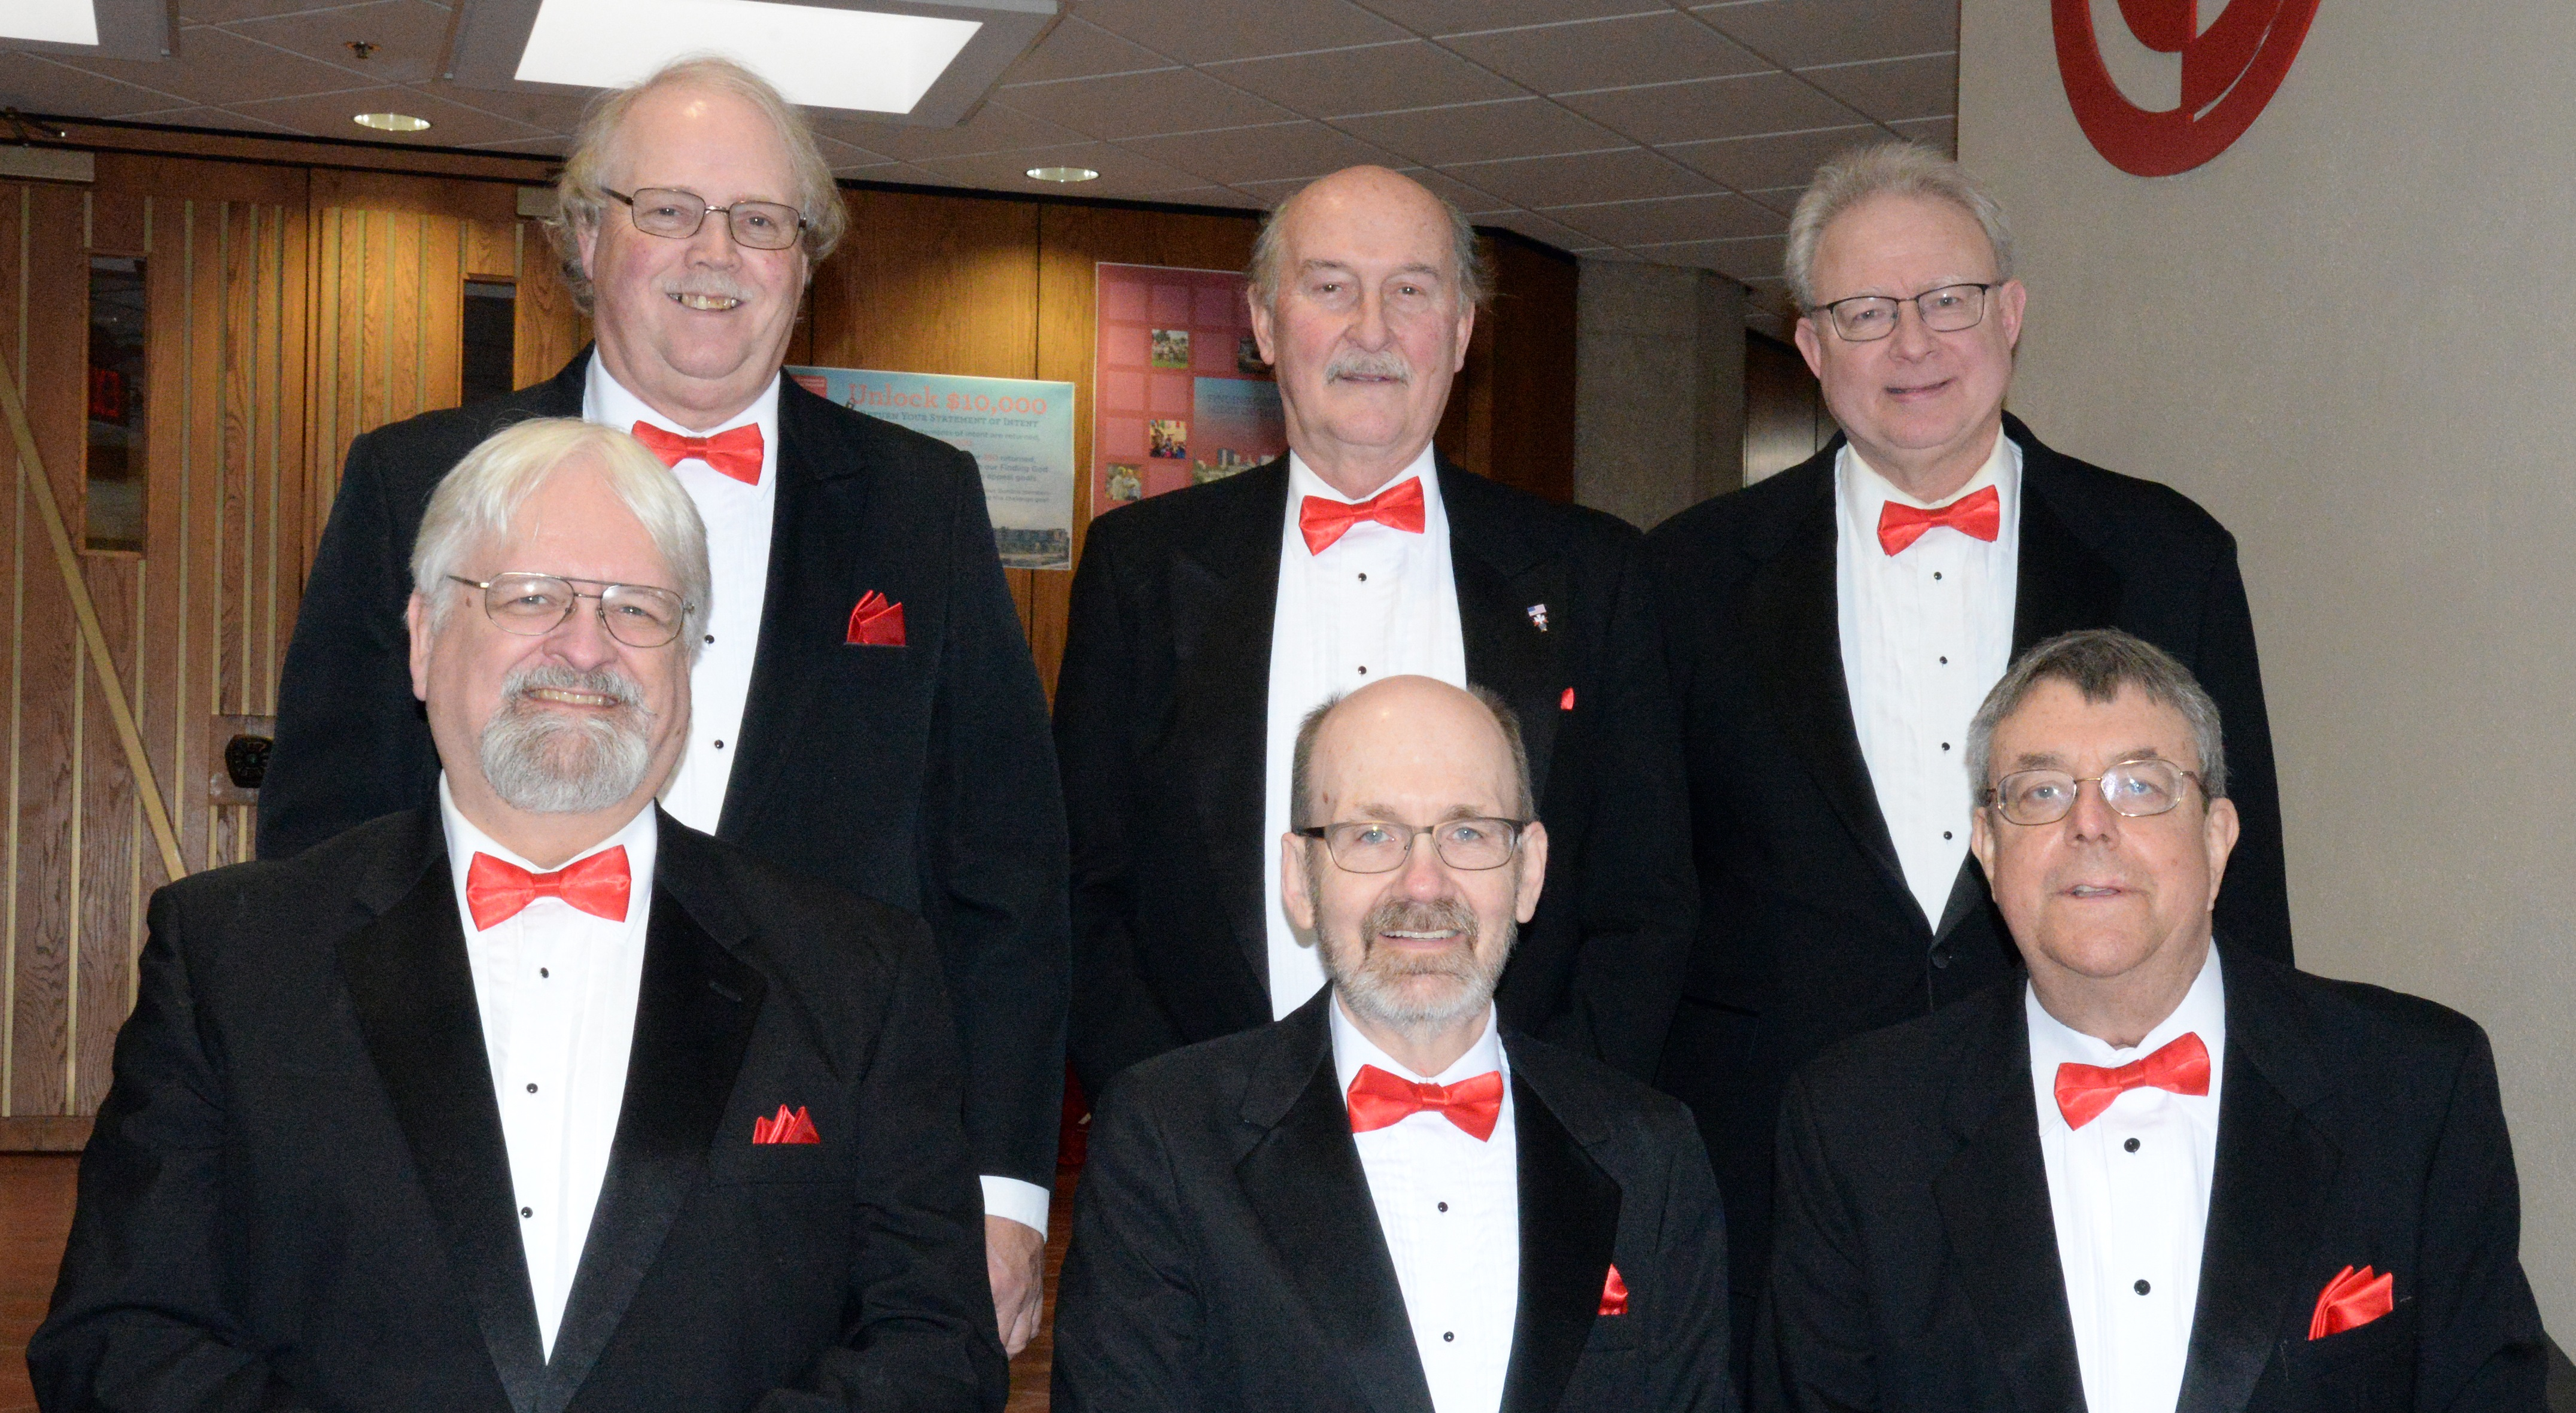 Rochester Male Chorus Board